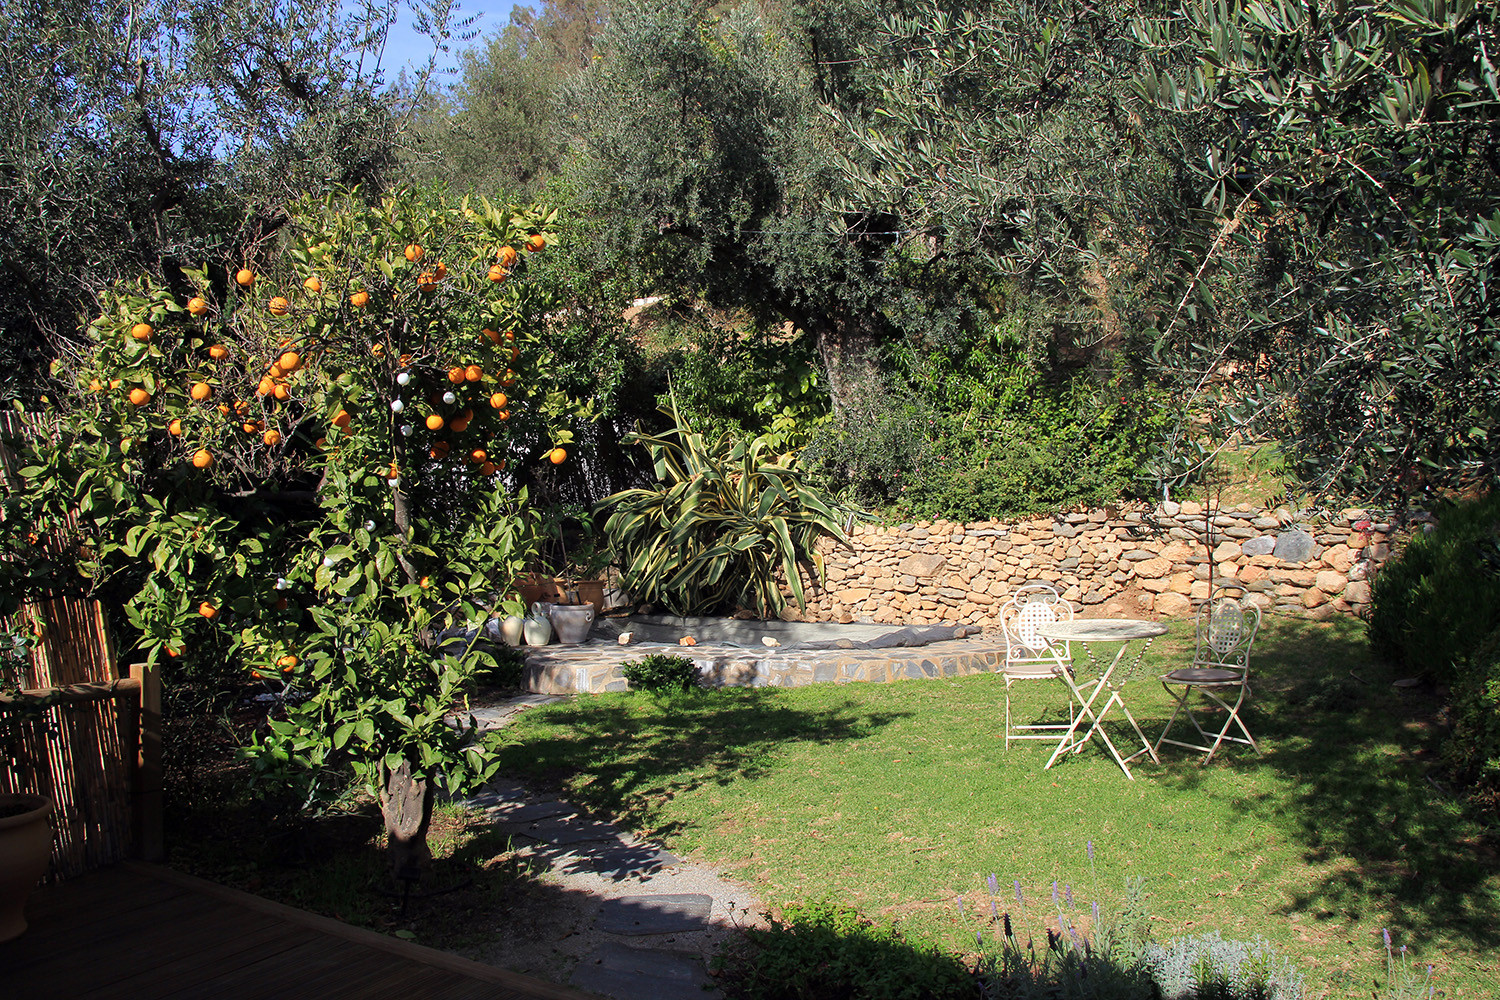 The garden with private swimming pool